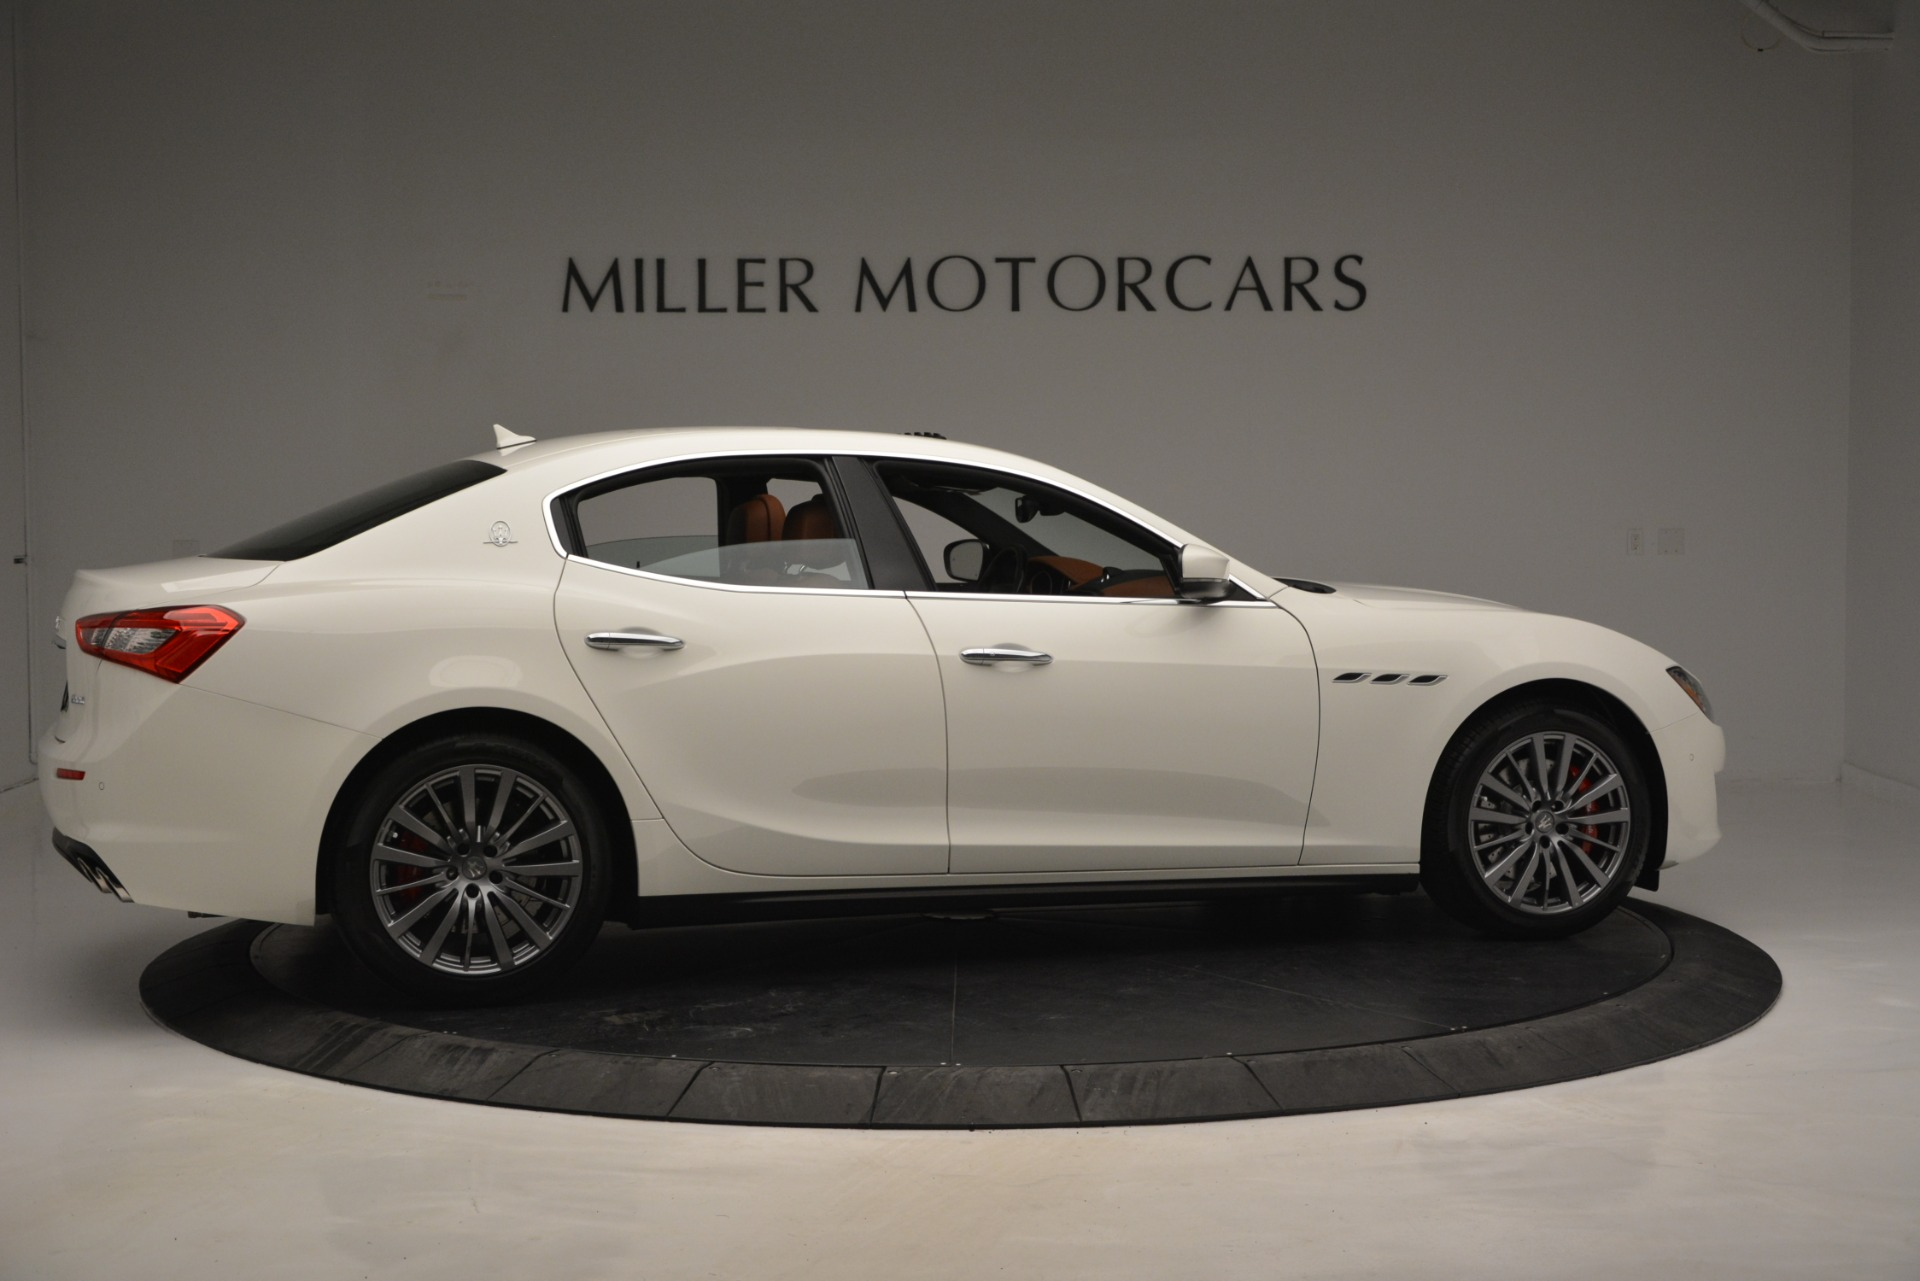 New 2019 Maserati Ghibli S Q4 For Sale In Greenwich, CT. Alfa Romeo of Greenwich, M2245 2795_p11